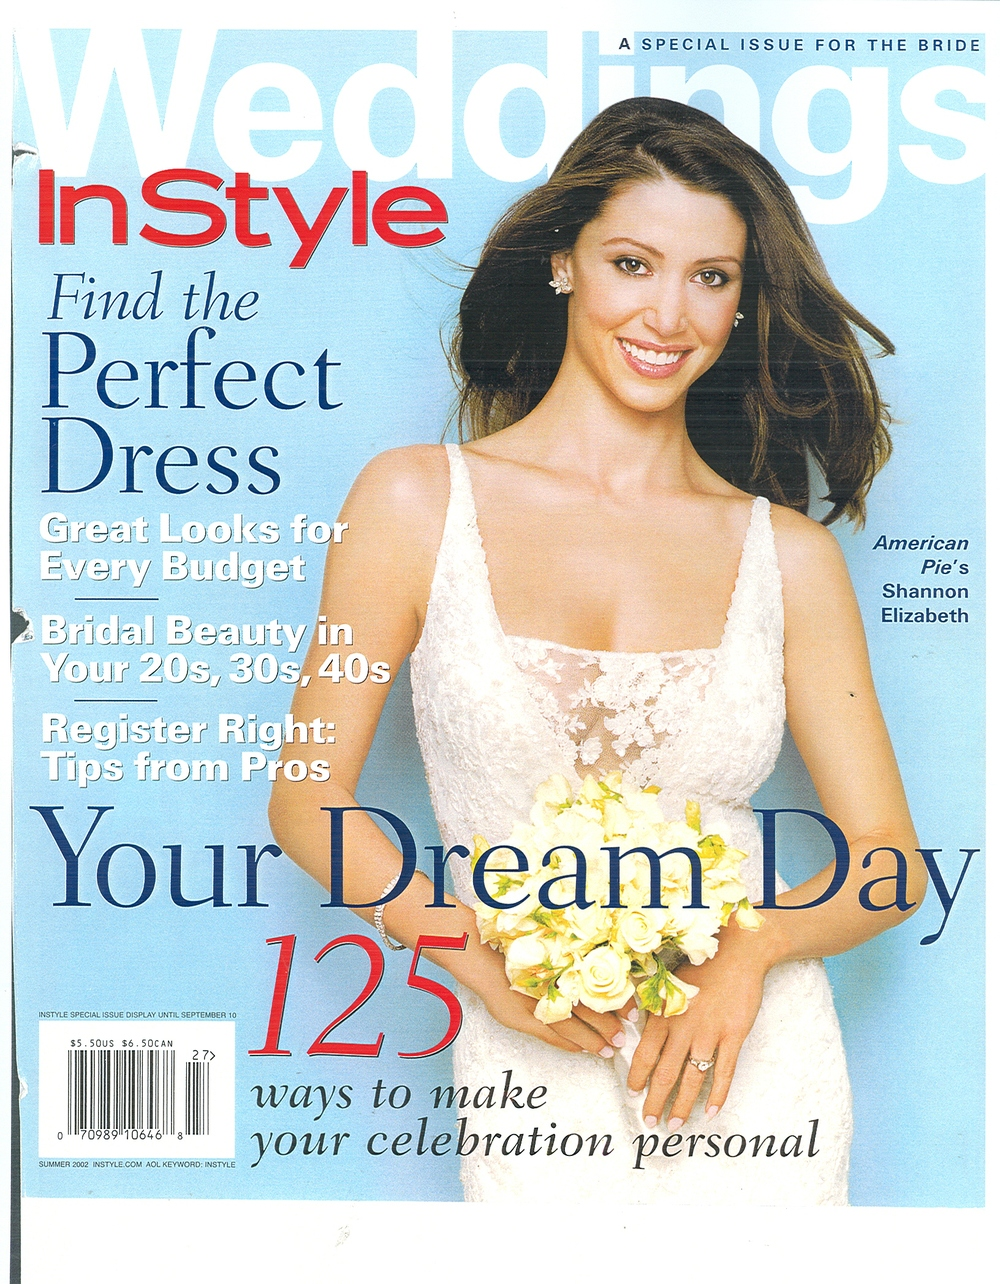 SE_InStyle Weddings_Summer 2002_1.jpg